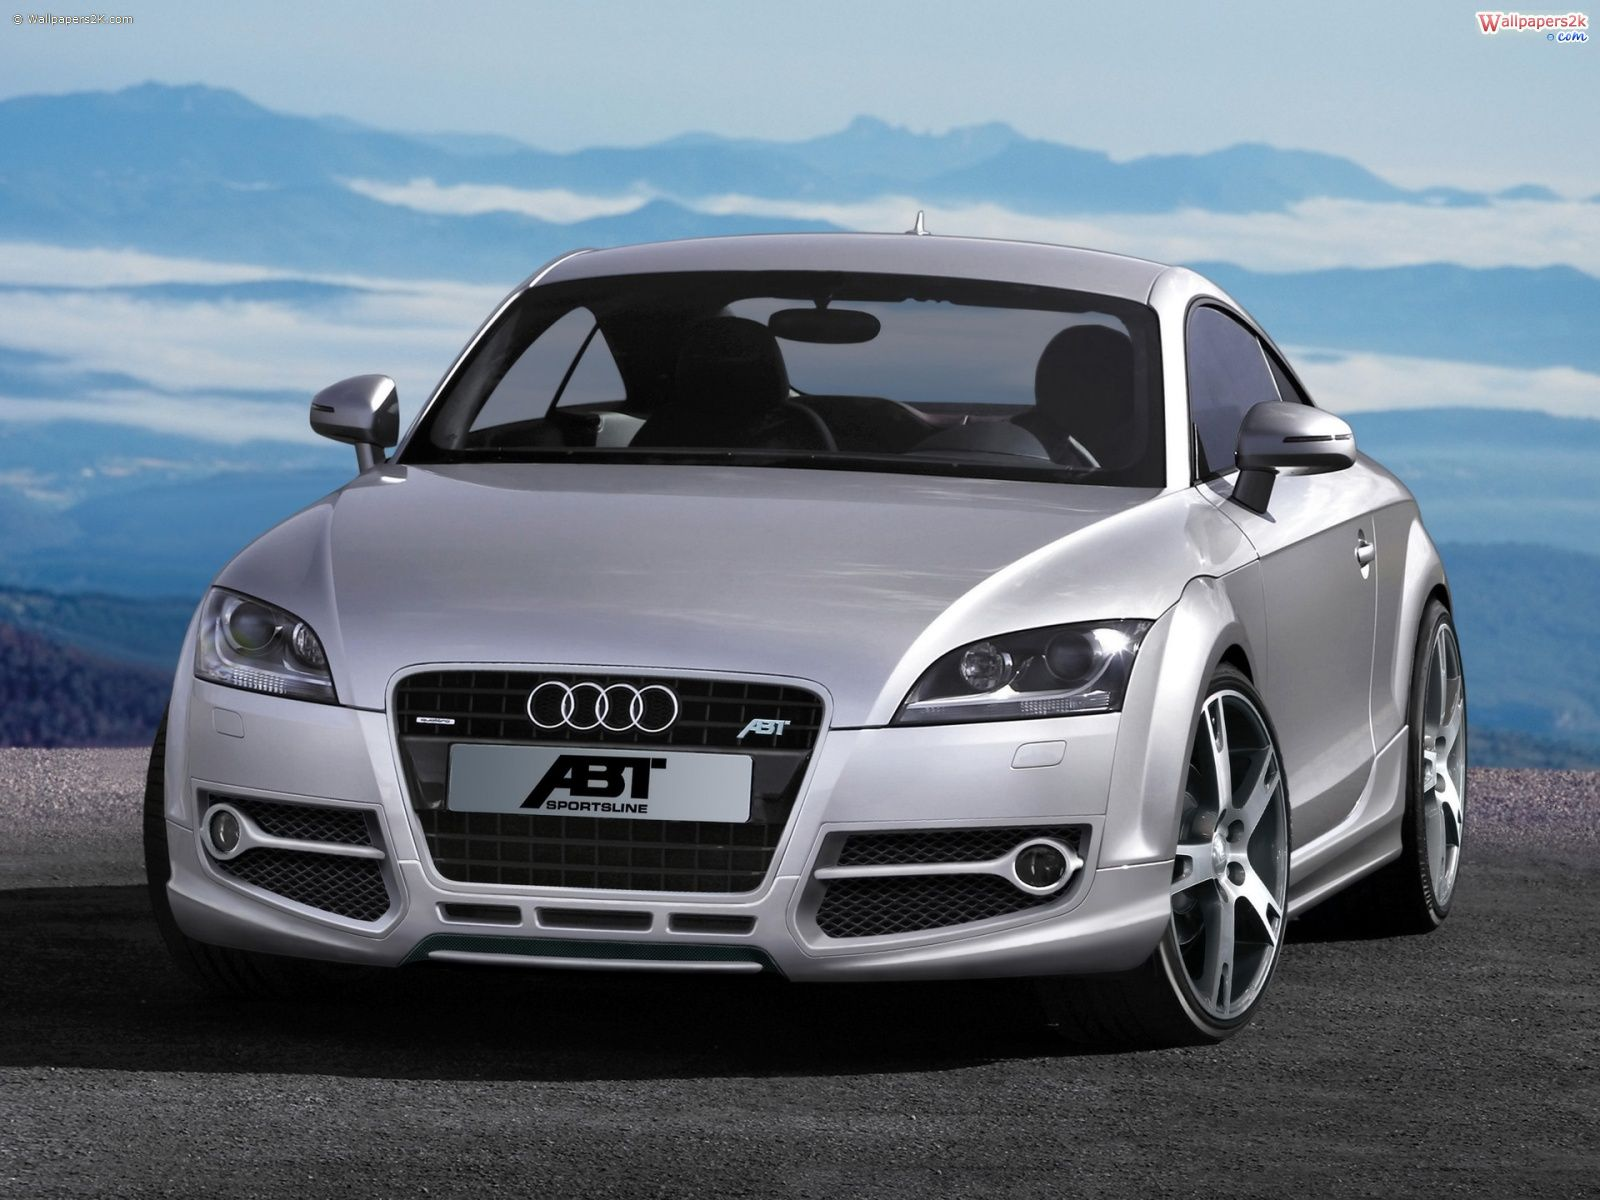 Audi And Ford Cars Gallery - Cheapest audi car